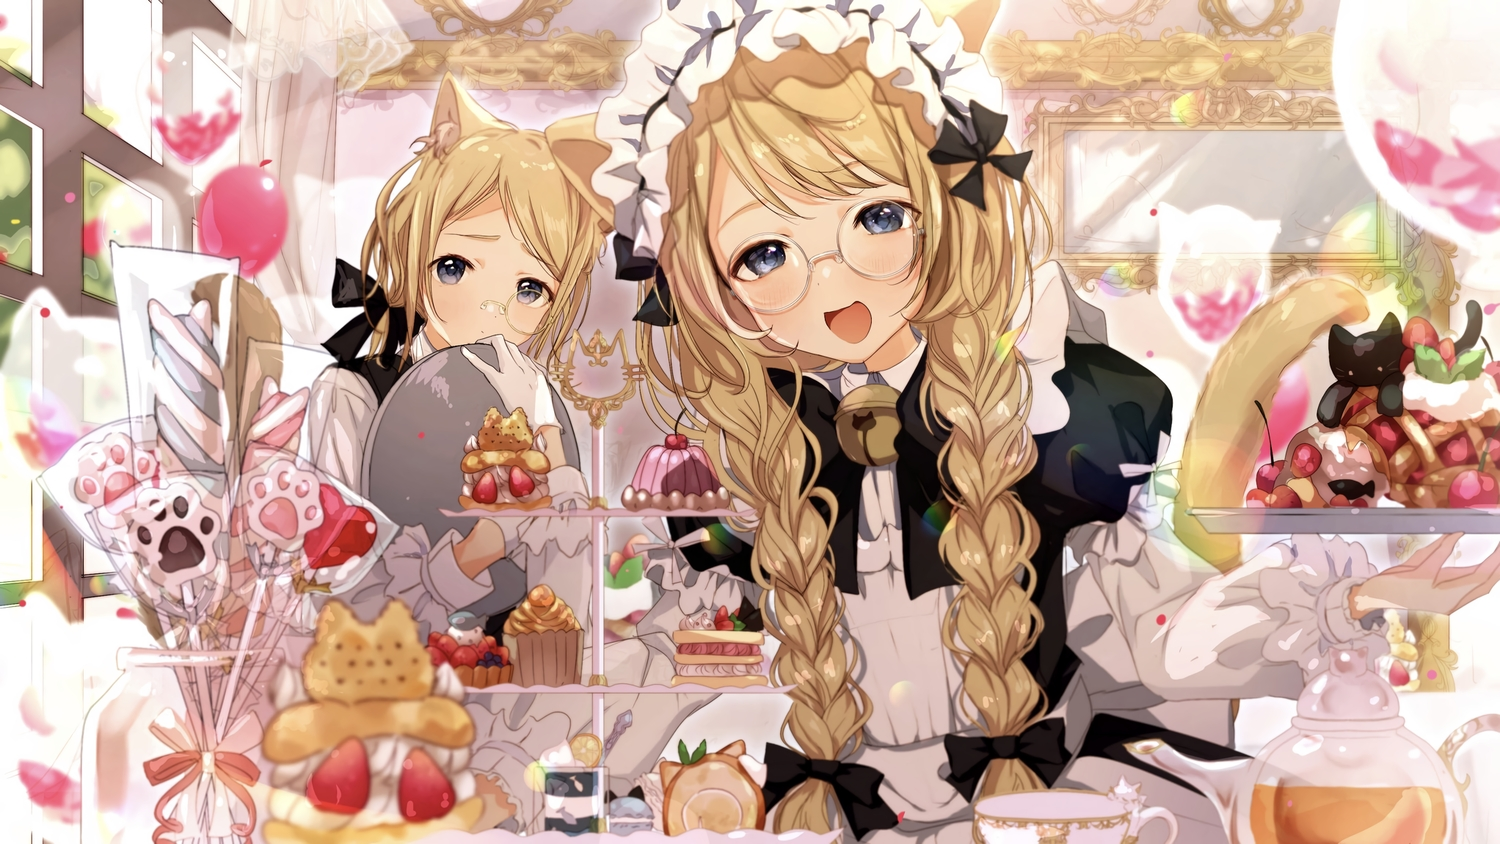 aliasing animal animal_ears bell black_eyes blonde_hair blush bow braids cake candy cat catboy catgirl food fruit glasses gloves headband lollipop long_hair maid male original peach_punch strawberry tail twintails